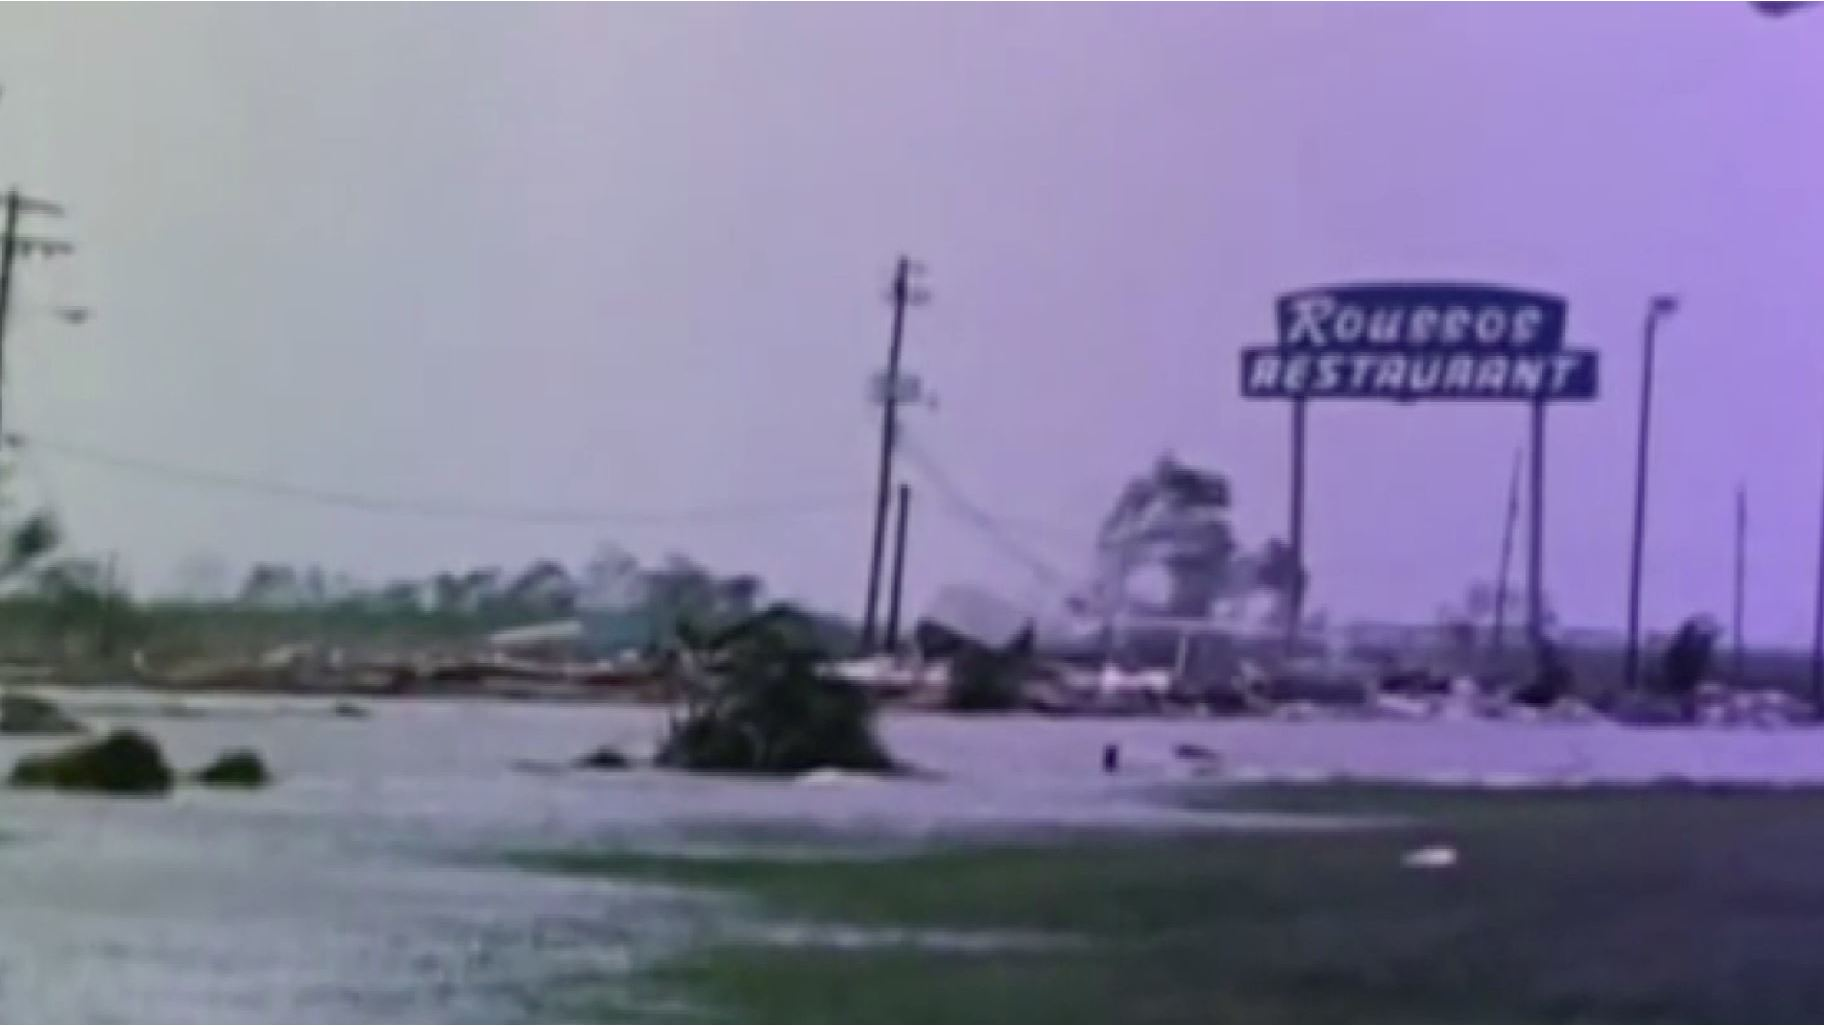 Hurricane Frederic's impact on the Gulf Coast 40 years ago